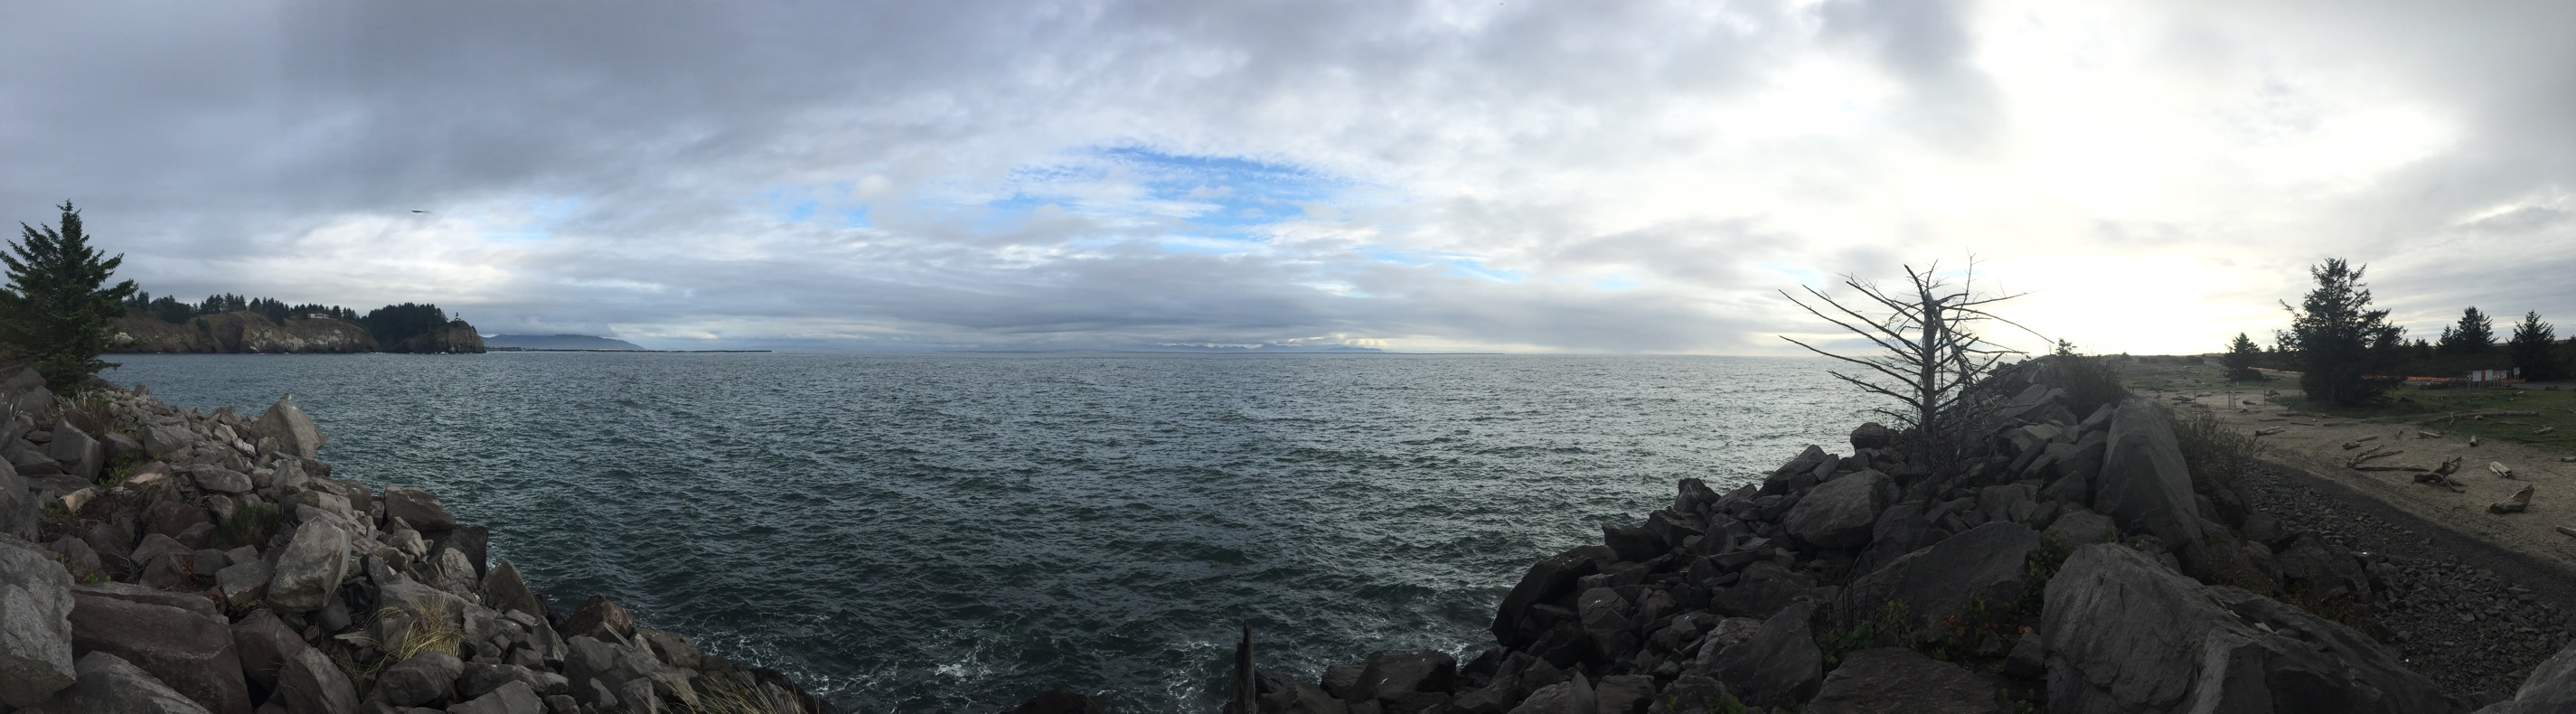 A panorama dominated by the water and overcast sky.